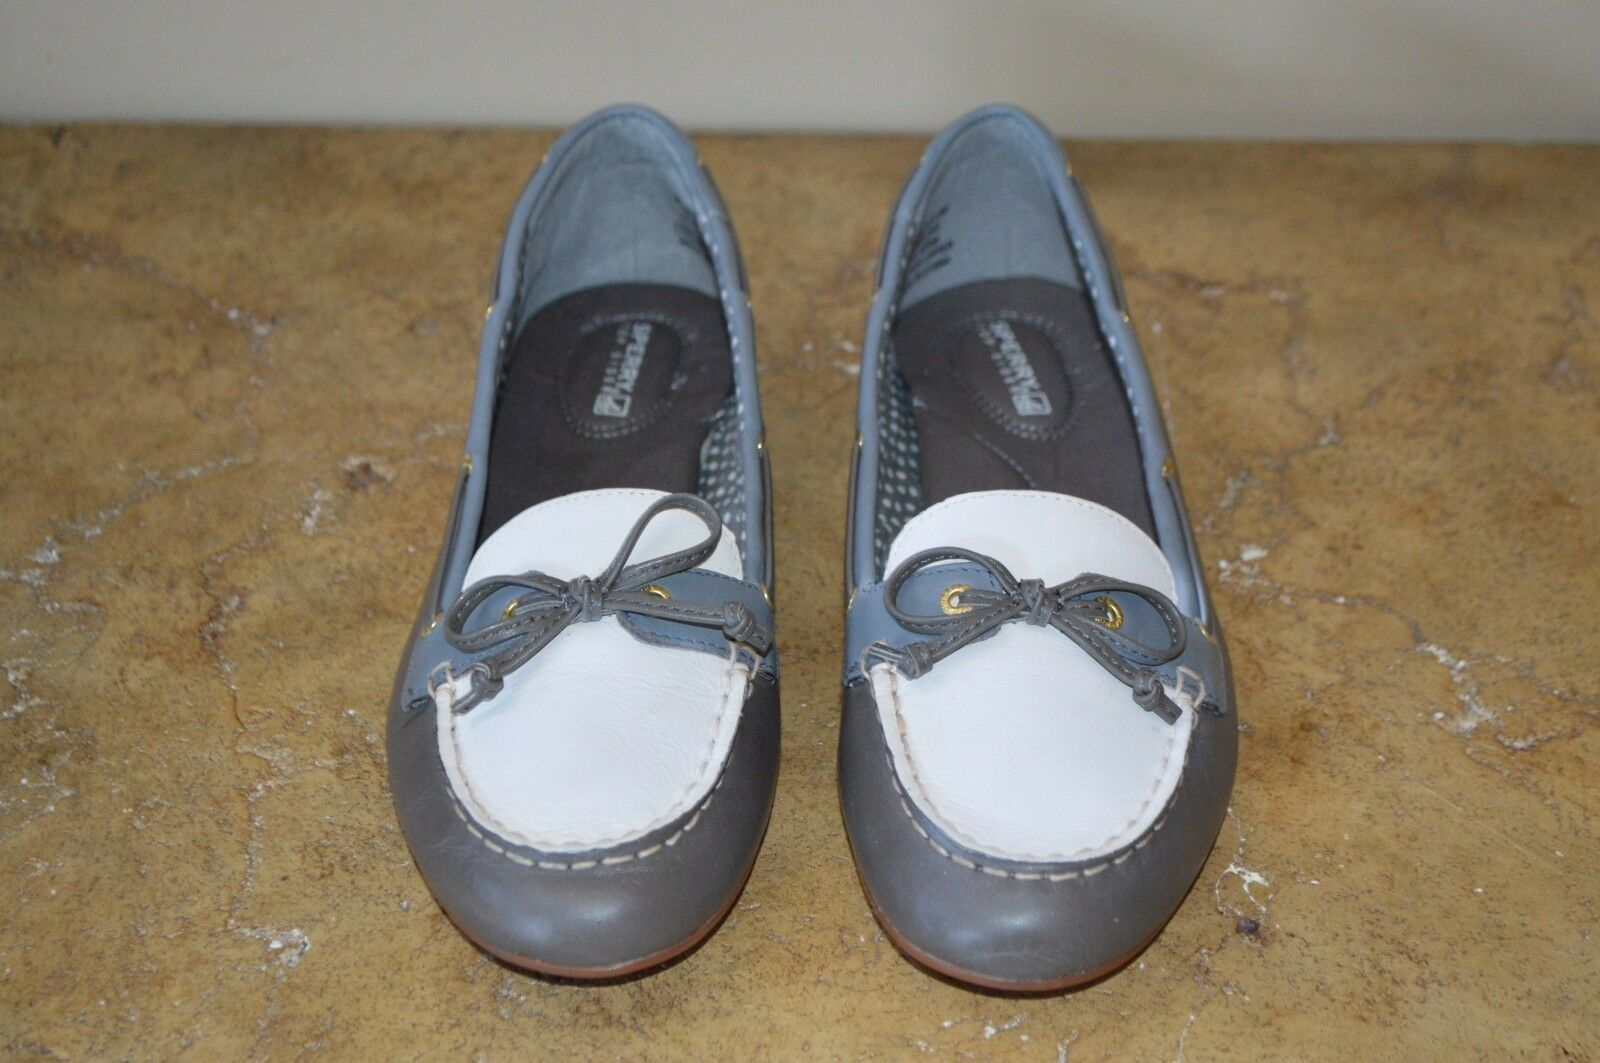 Sperry Top-sider Womens Grey Beige Leather Loafers Size 8